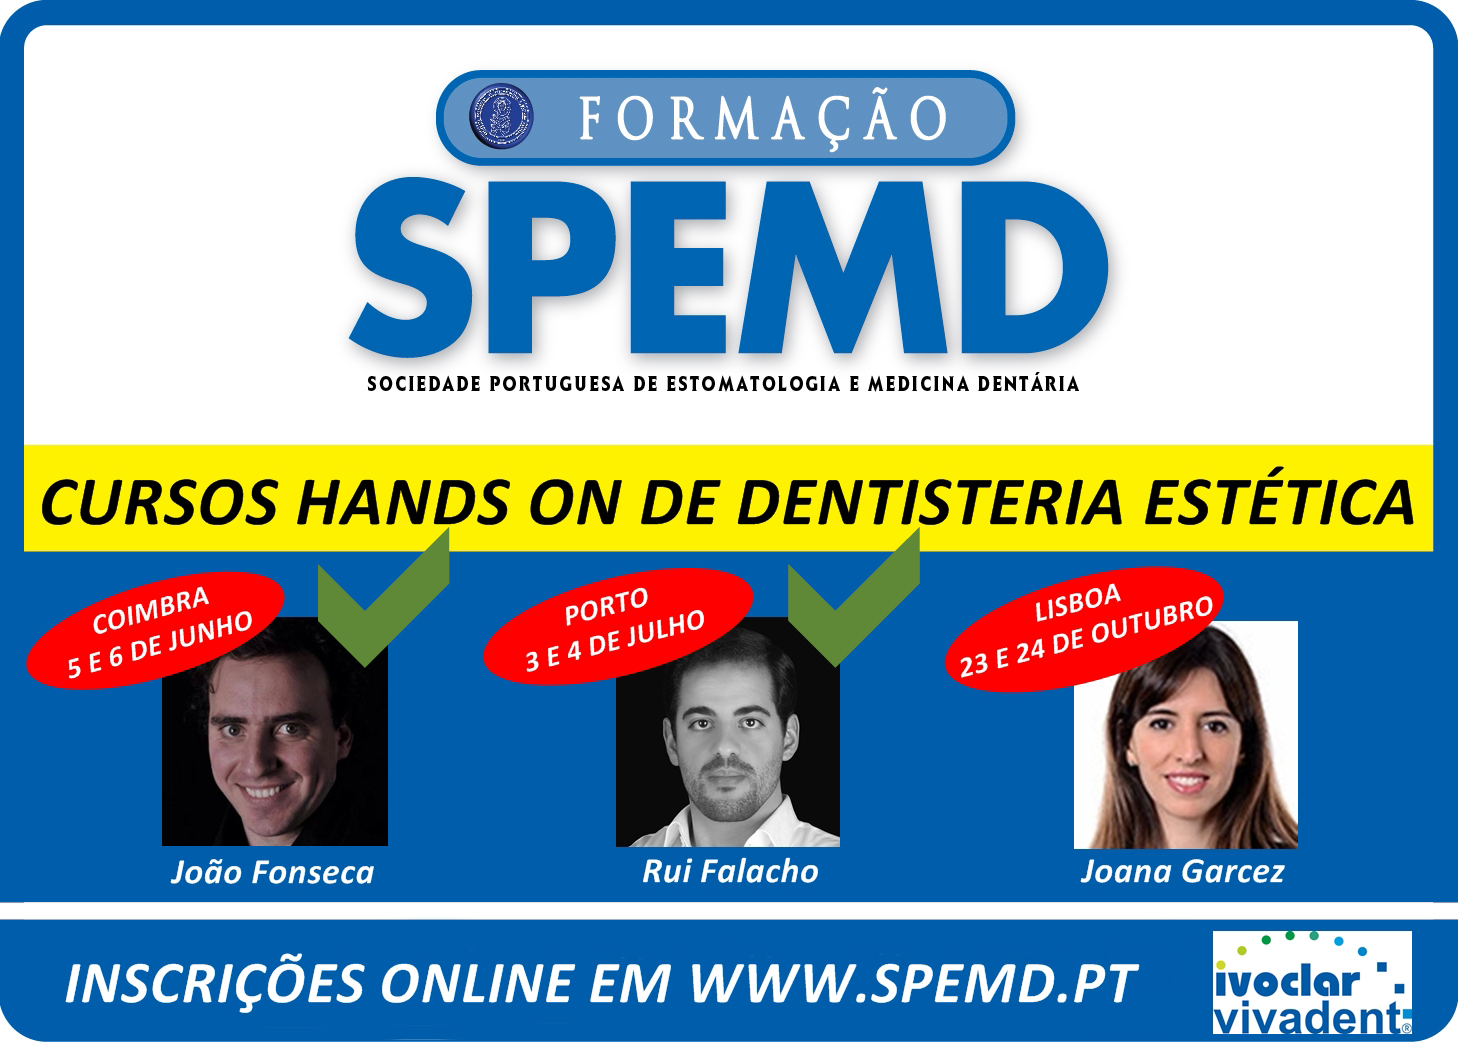 Cursos Hands-on de Dentristeria Estética